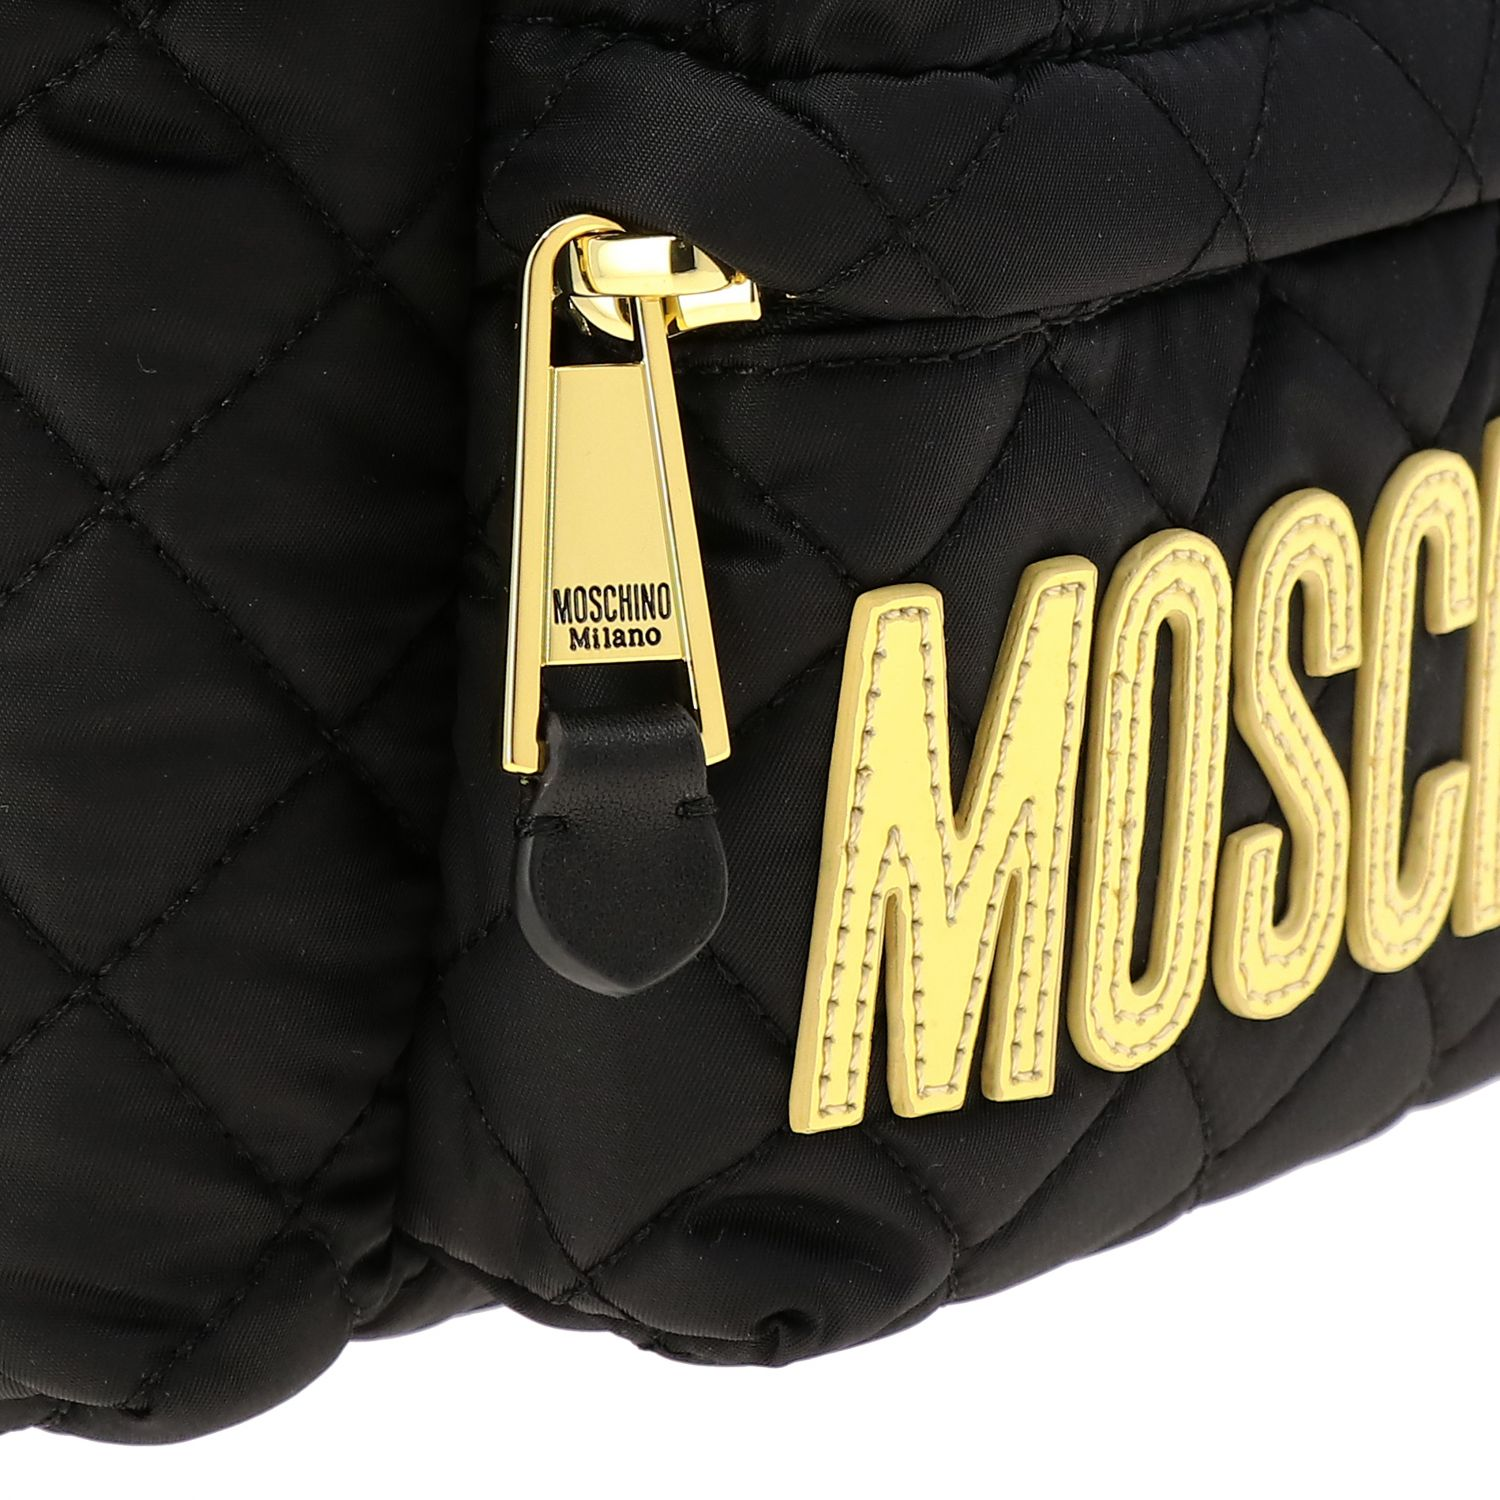 Zaino Moschino Couture in nylon trapuntato con big logo nero 5